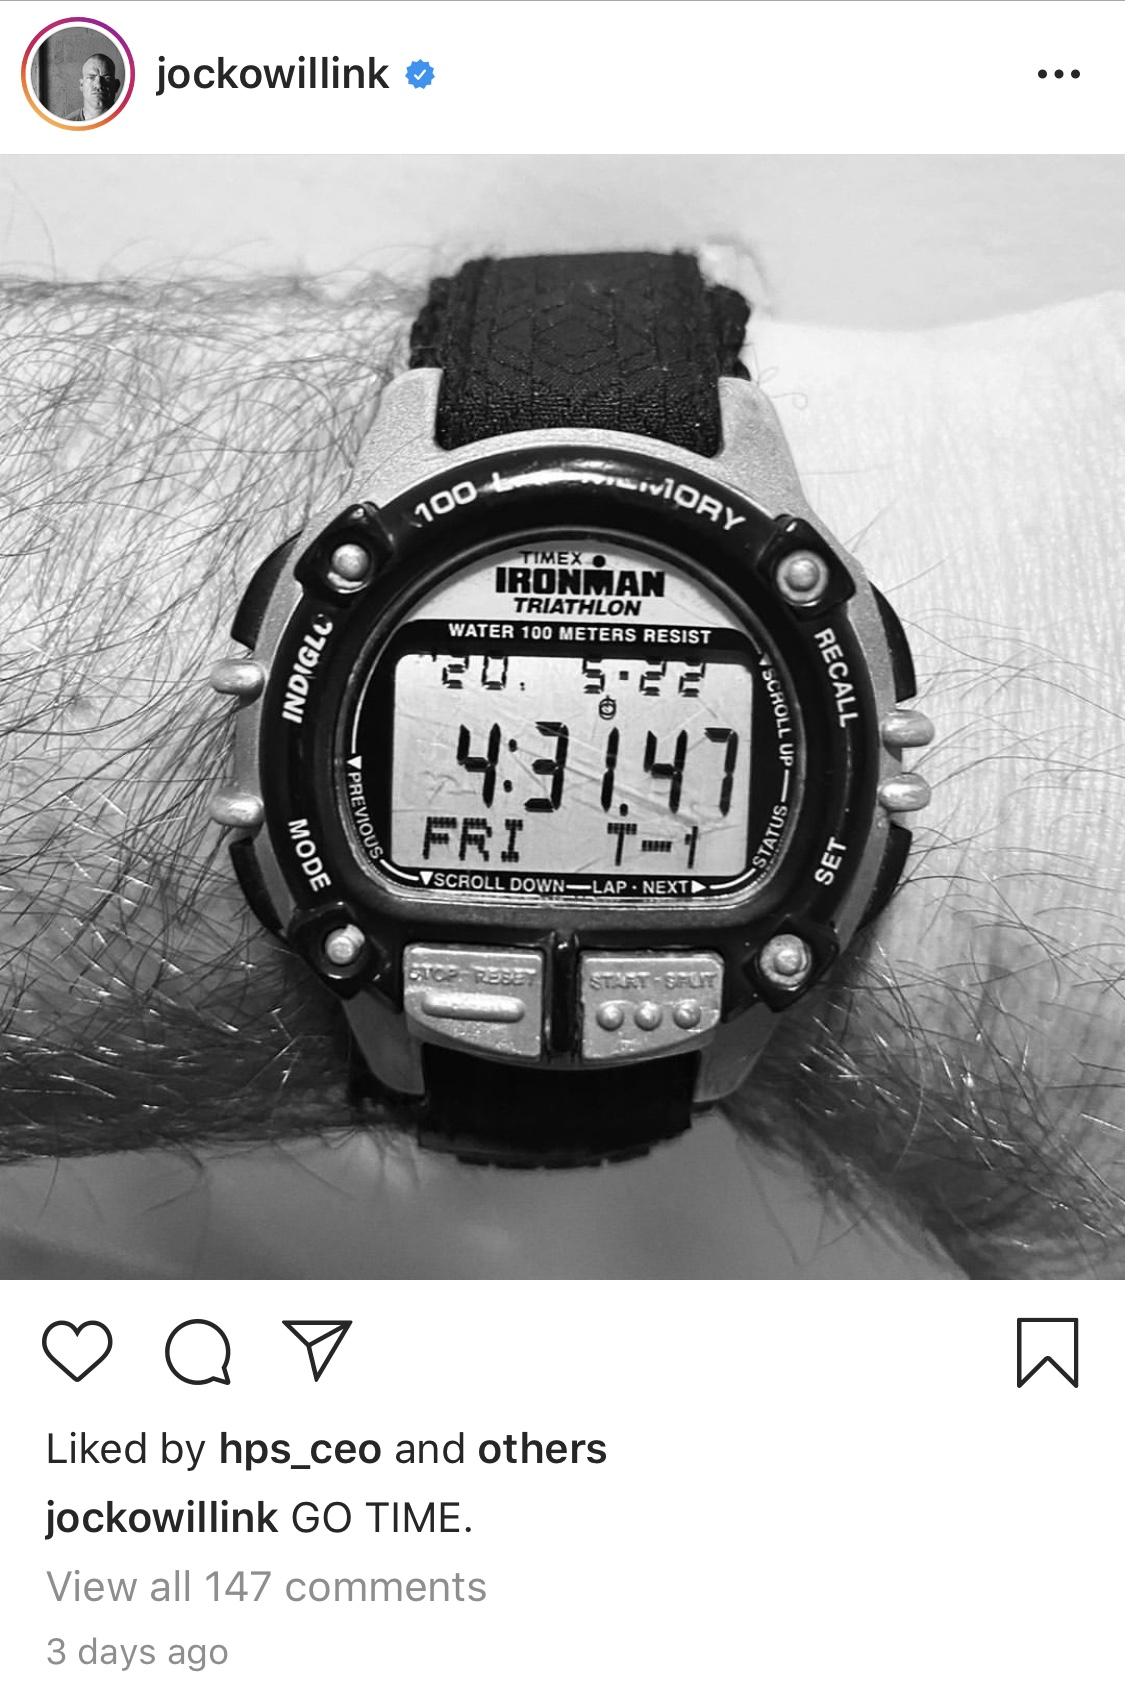 Our interview with Jocko Willink, and a daily shot of his Timex, is the motivation we all need right now